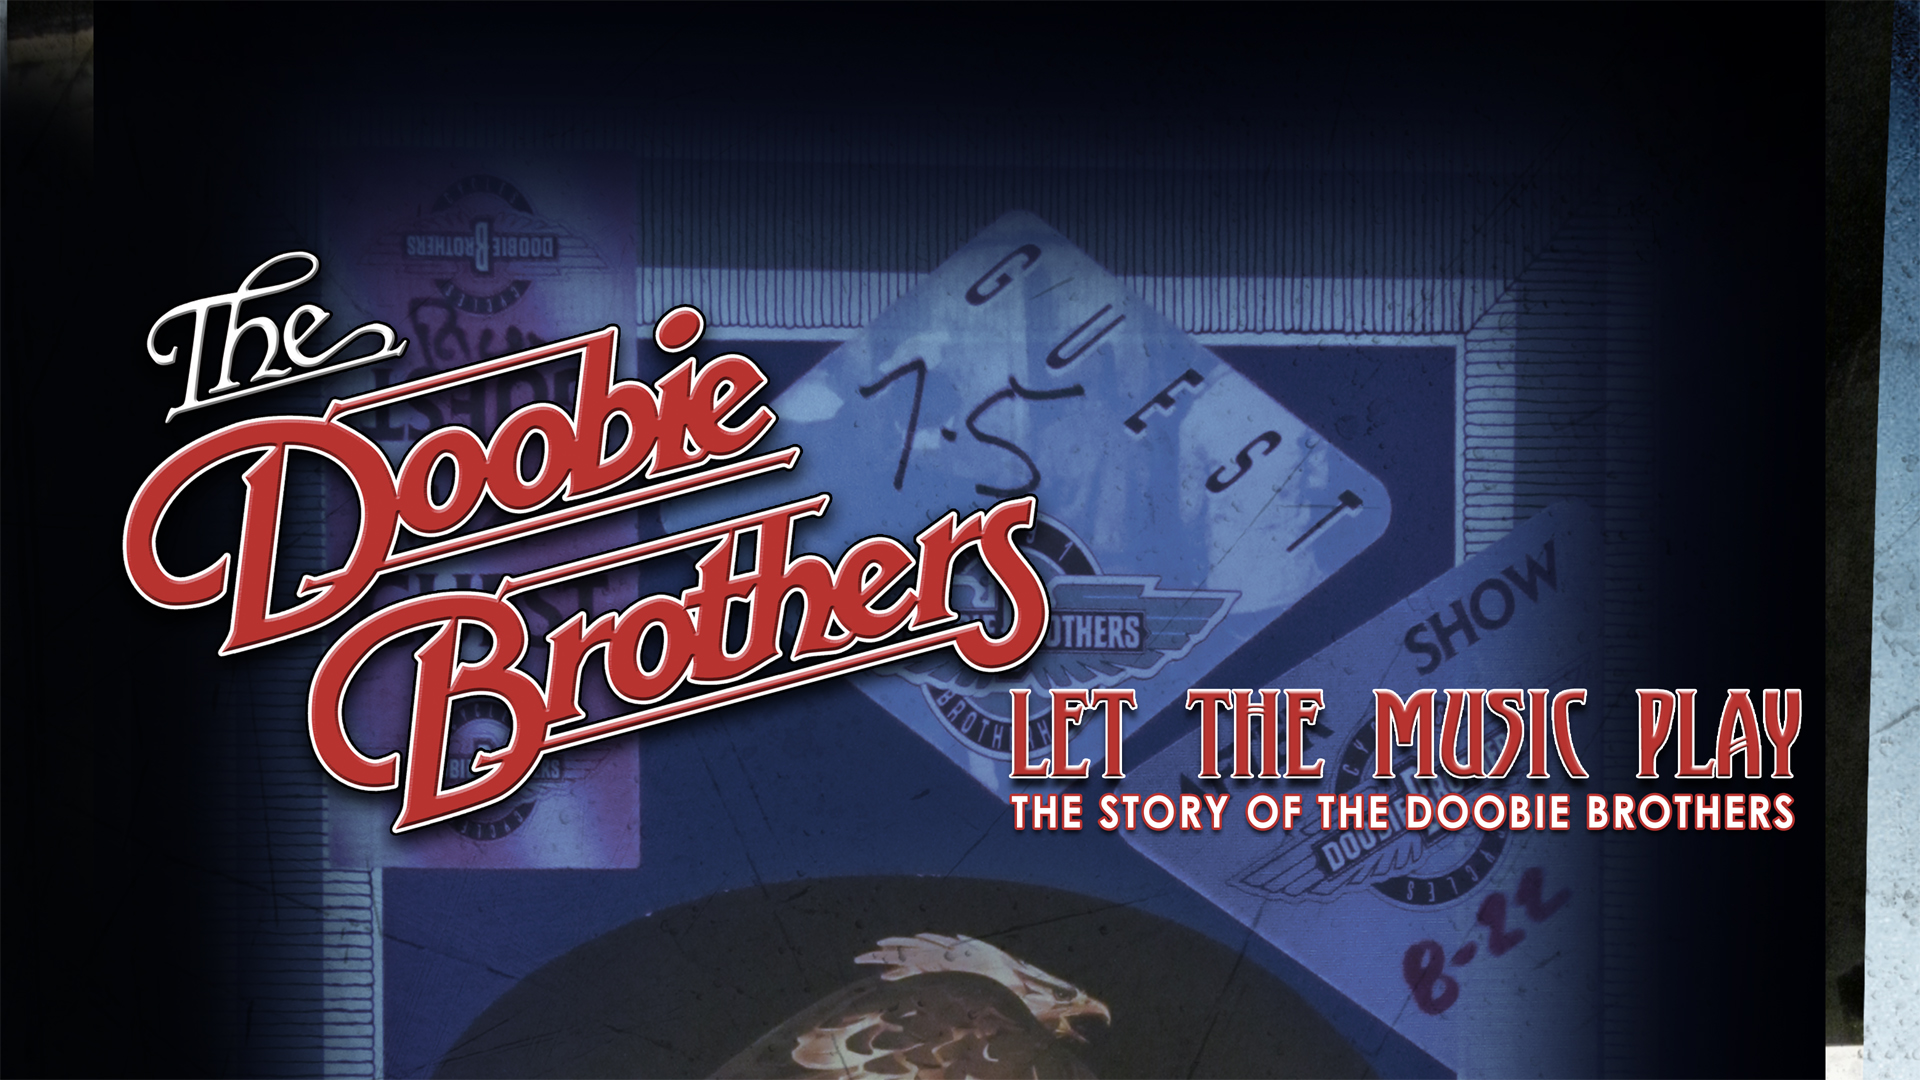 Doobie Brothers - Let The Music Play (The Story Of The Doobie Brothers)